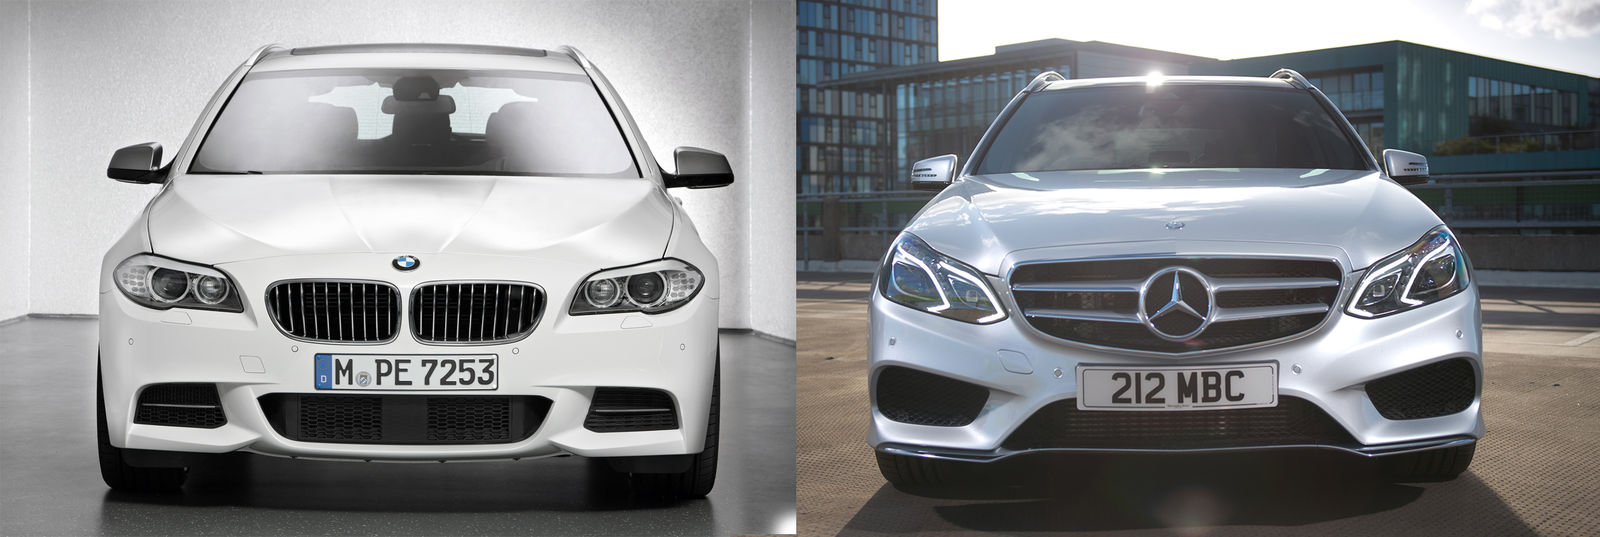 mercedes e class estate vs bmw 5 series touring large. Black Bedroom Furniture Sets. Home Design Ideas